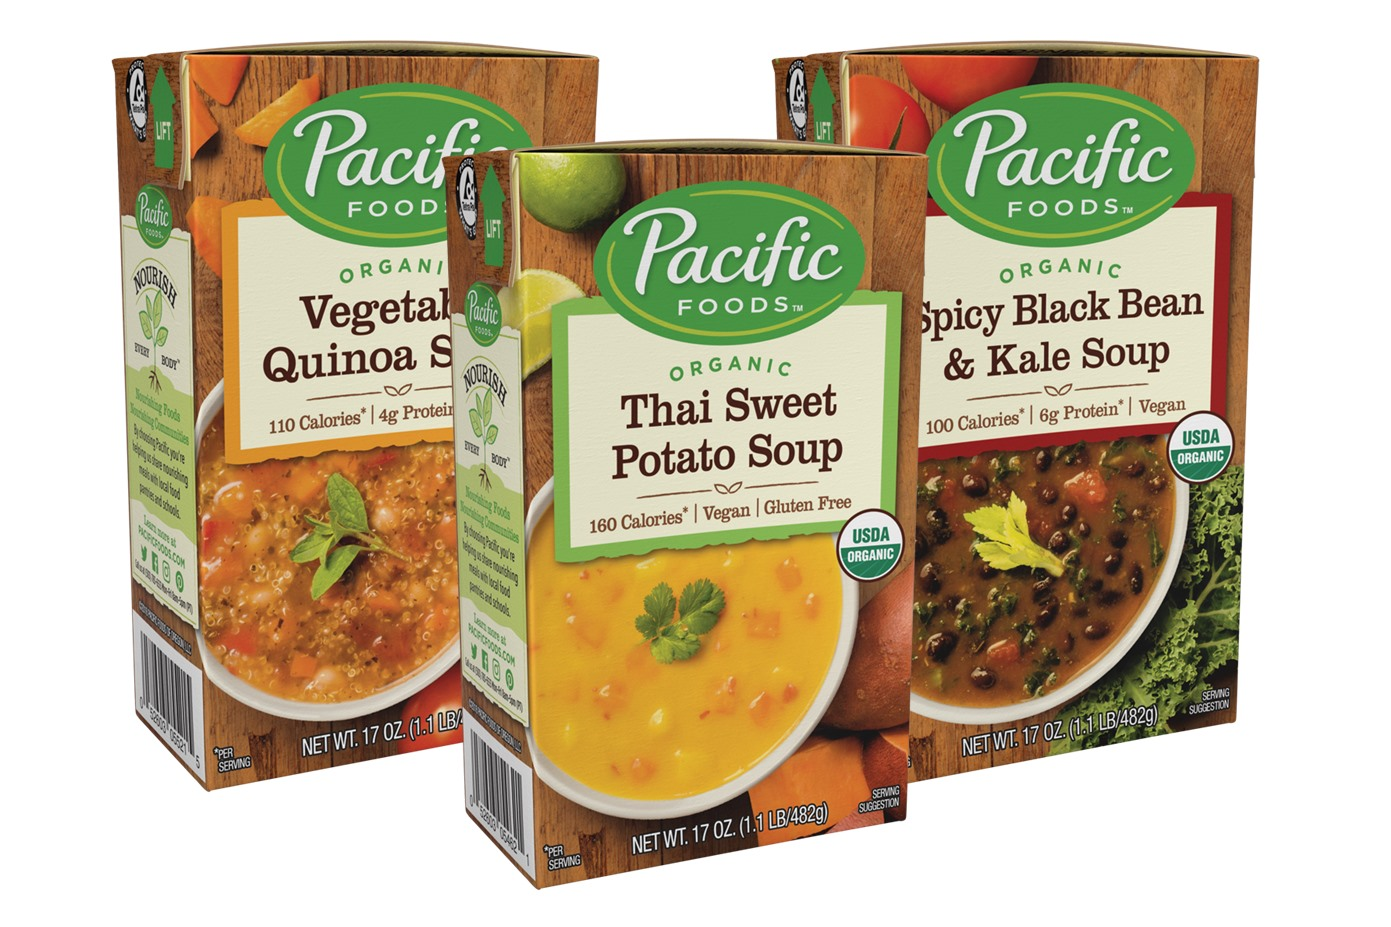 Pacific Foods Hearty Soups Reviews and Info - Dairy-Free Varieties. Pictured: Three Top Organic Flavors